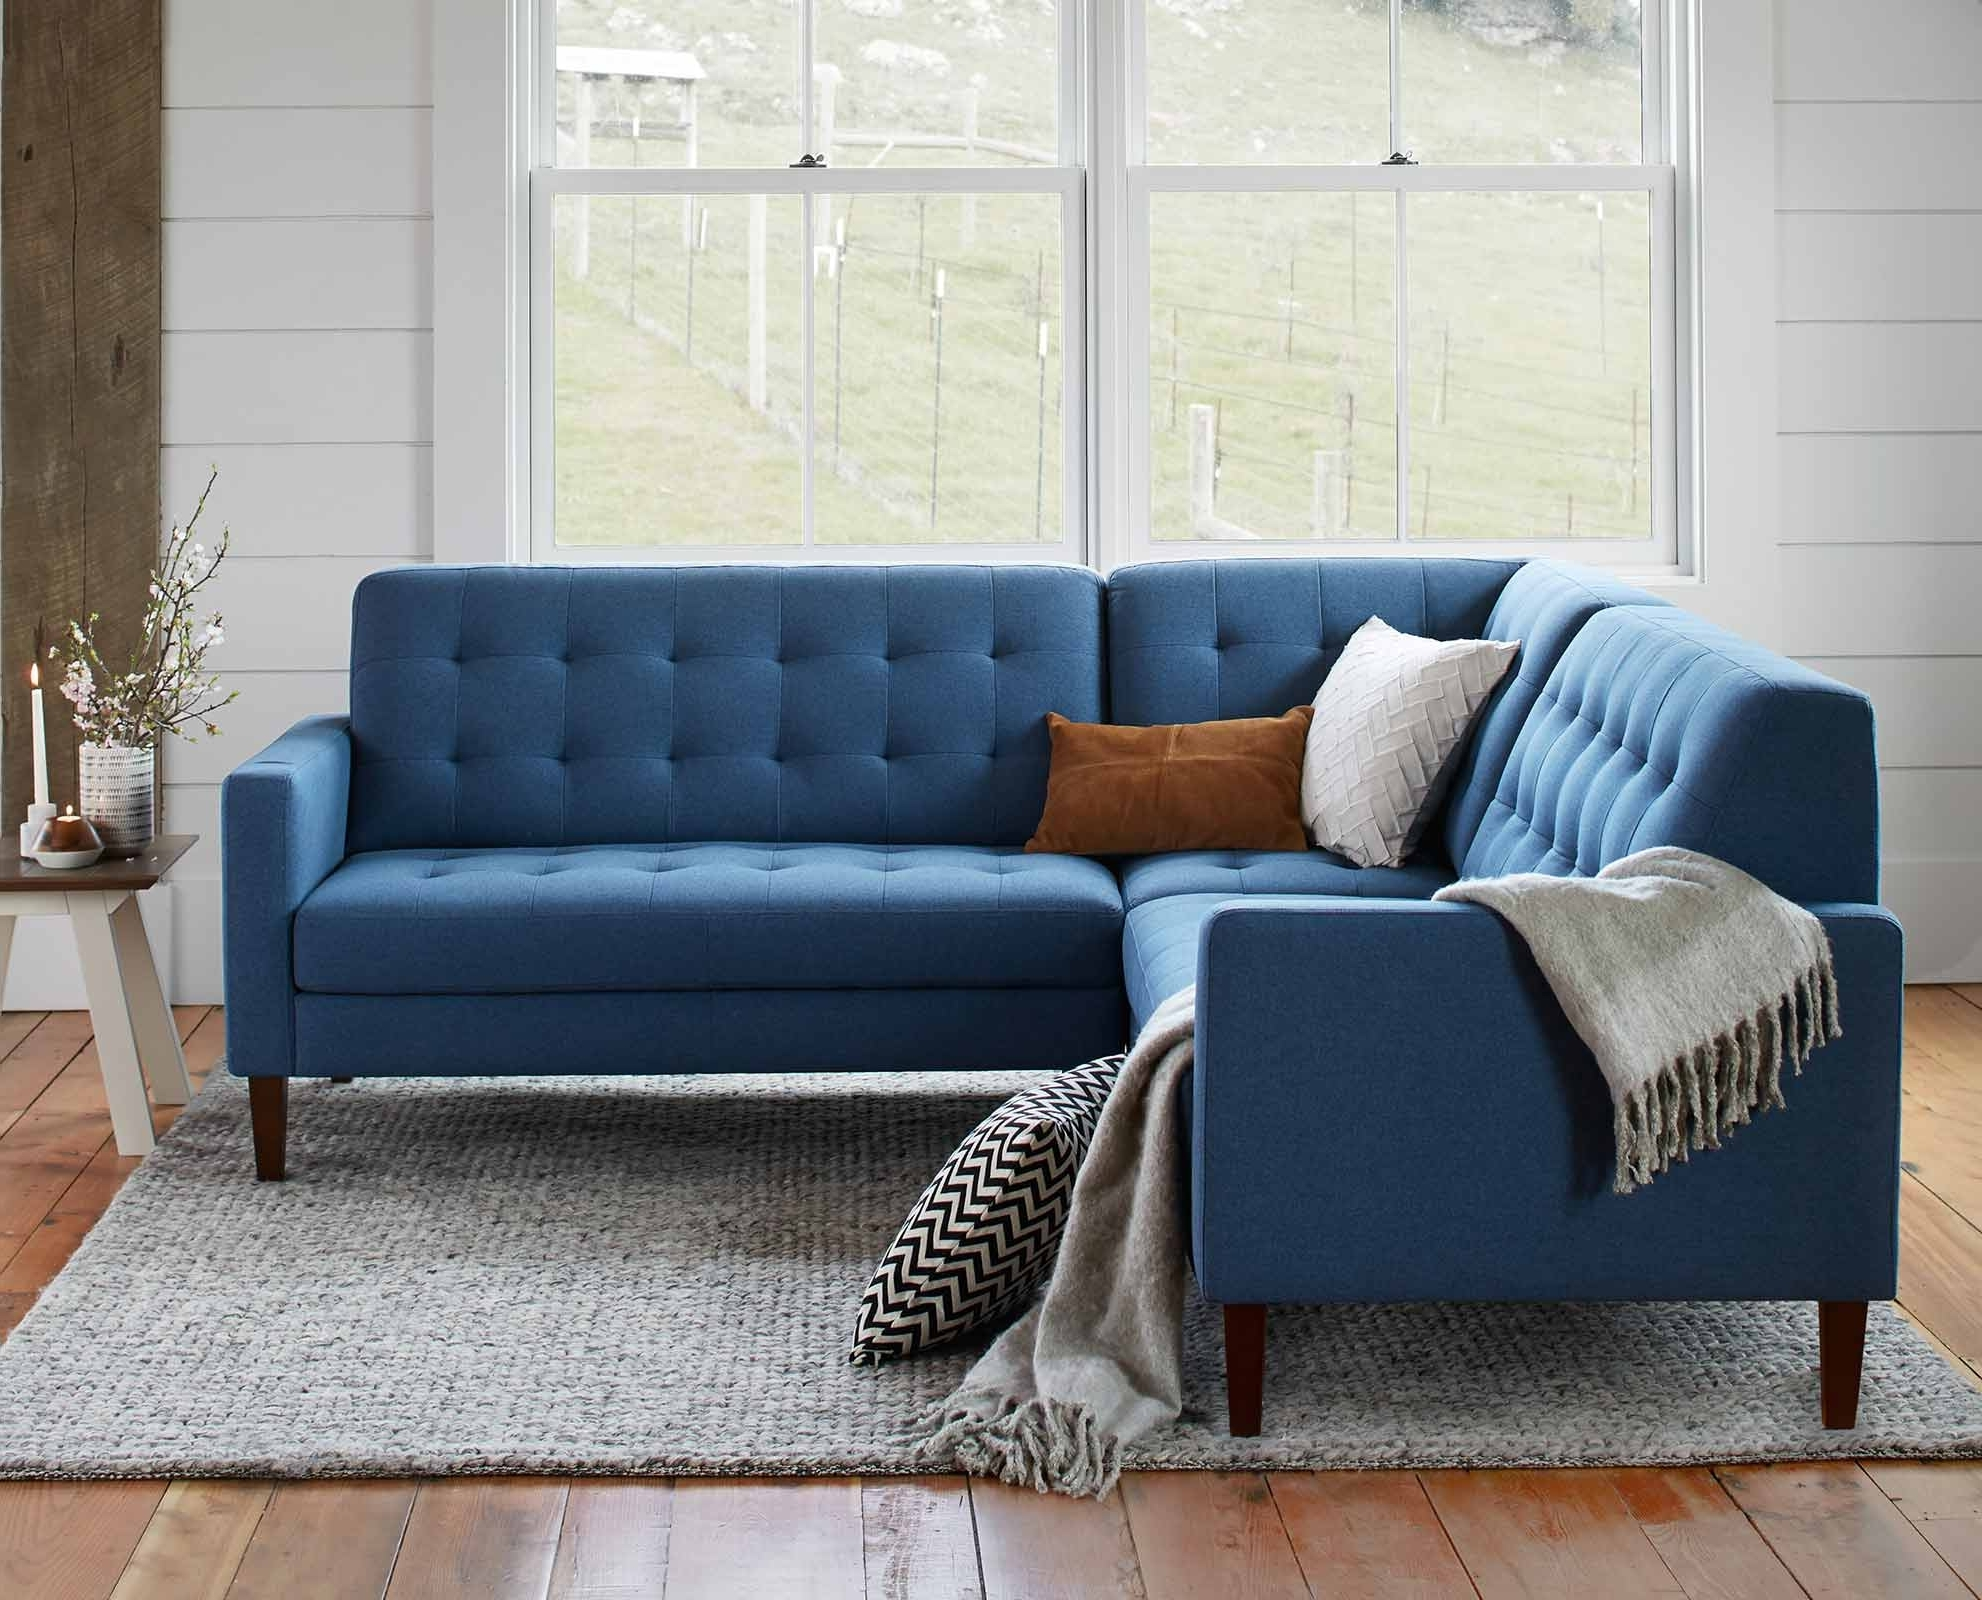 Dania Sectional Sofas Throughout Well Known The Camilla Sectional From Scandinavian Designs – Adopt A Adopt A (View 2 of 20)